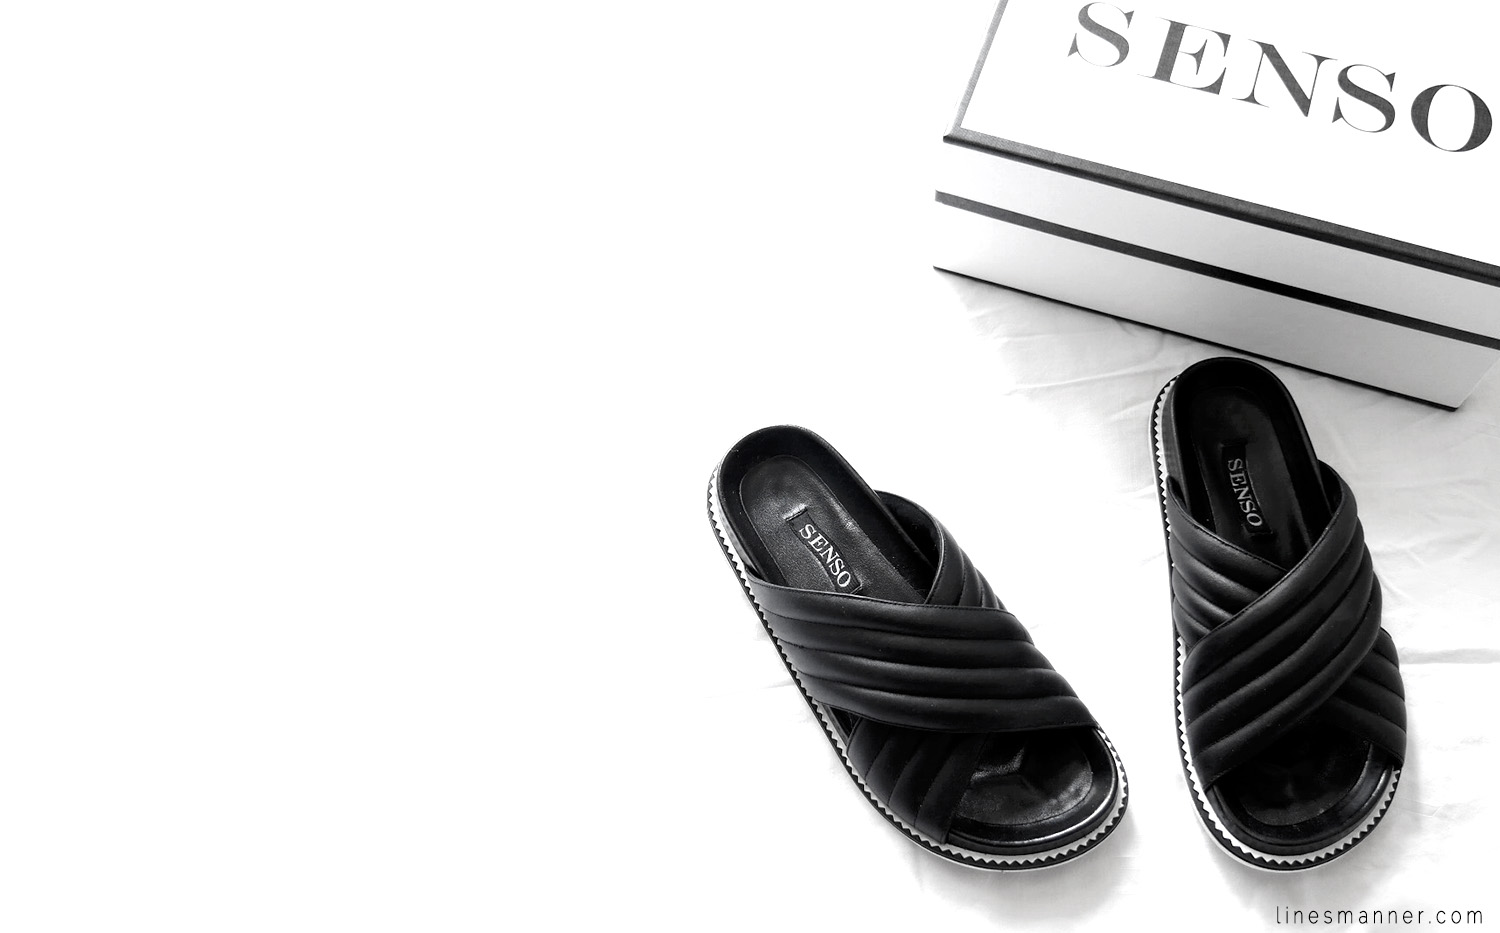 Lines-Manner-Trend-Shoes-Sandal-Comfort-Modern-Simplicity-Quality-Trend-Minimalism-Minimal-Leather-Flat-Senso-Summer-Black-Monochrome-4